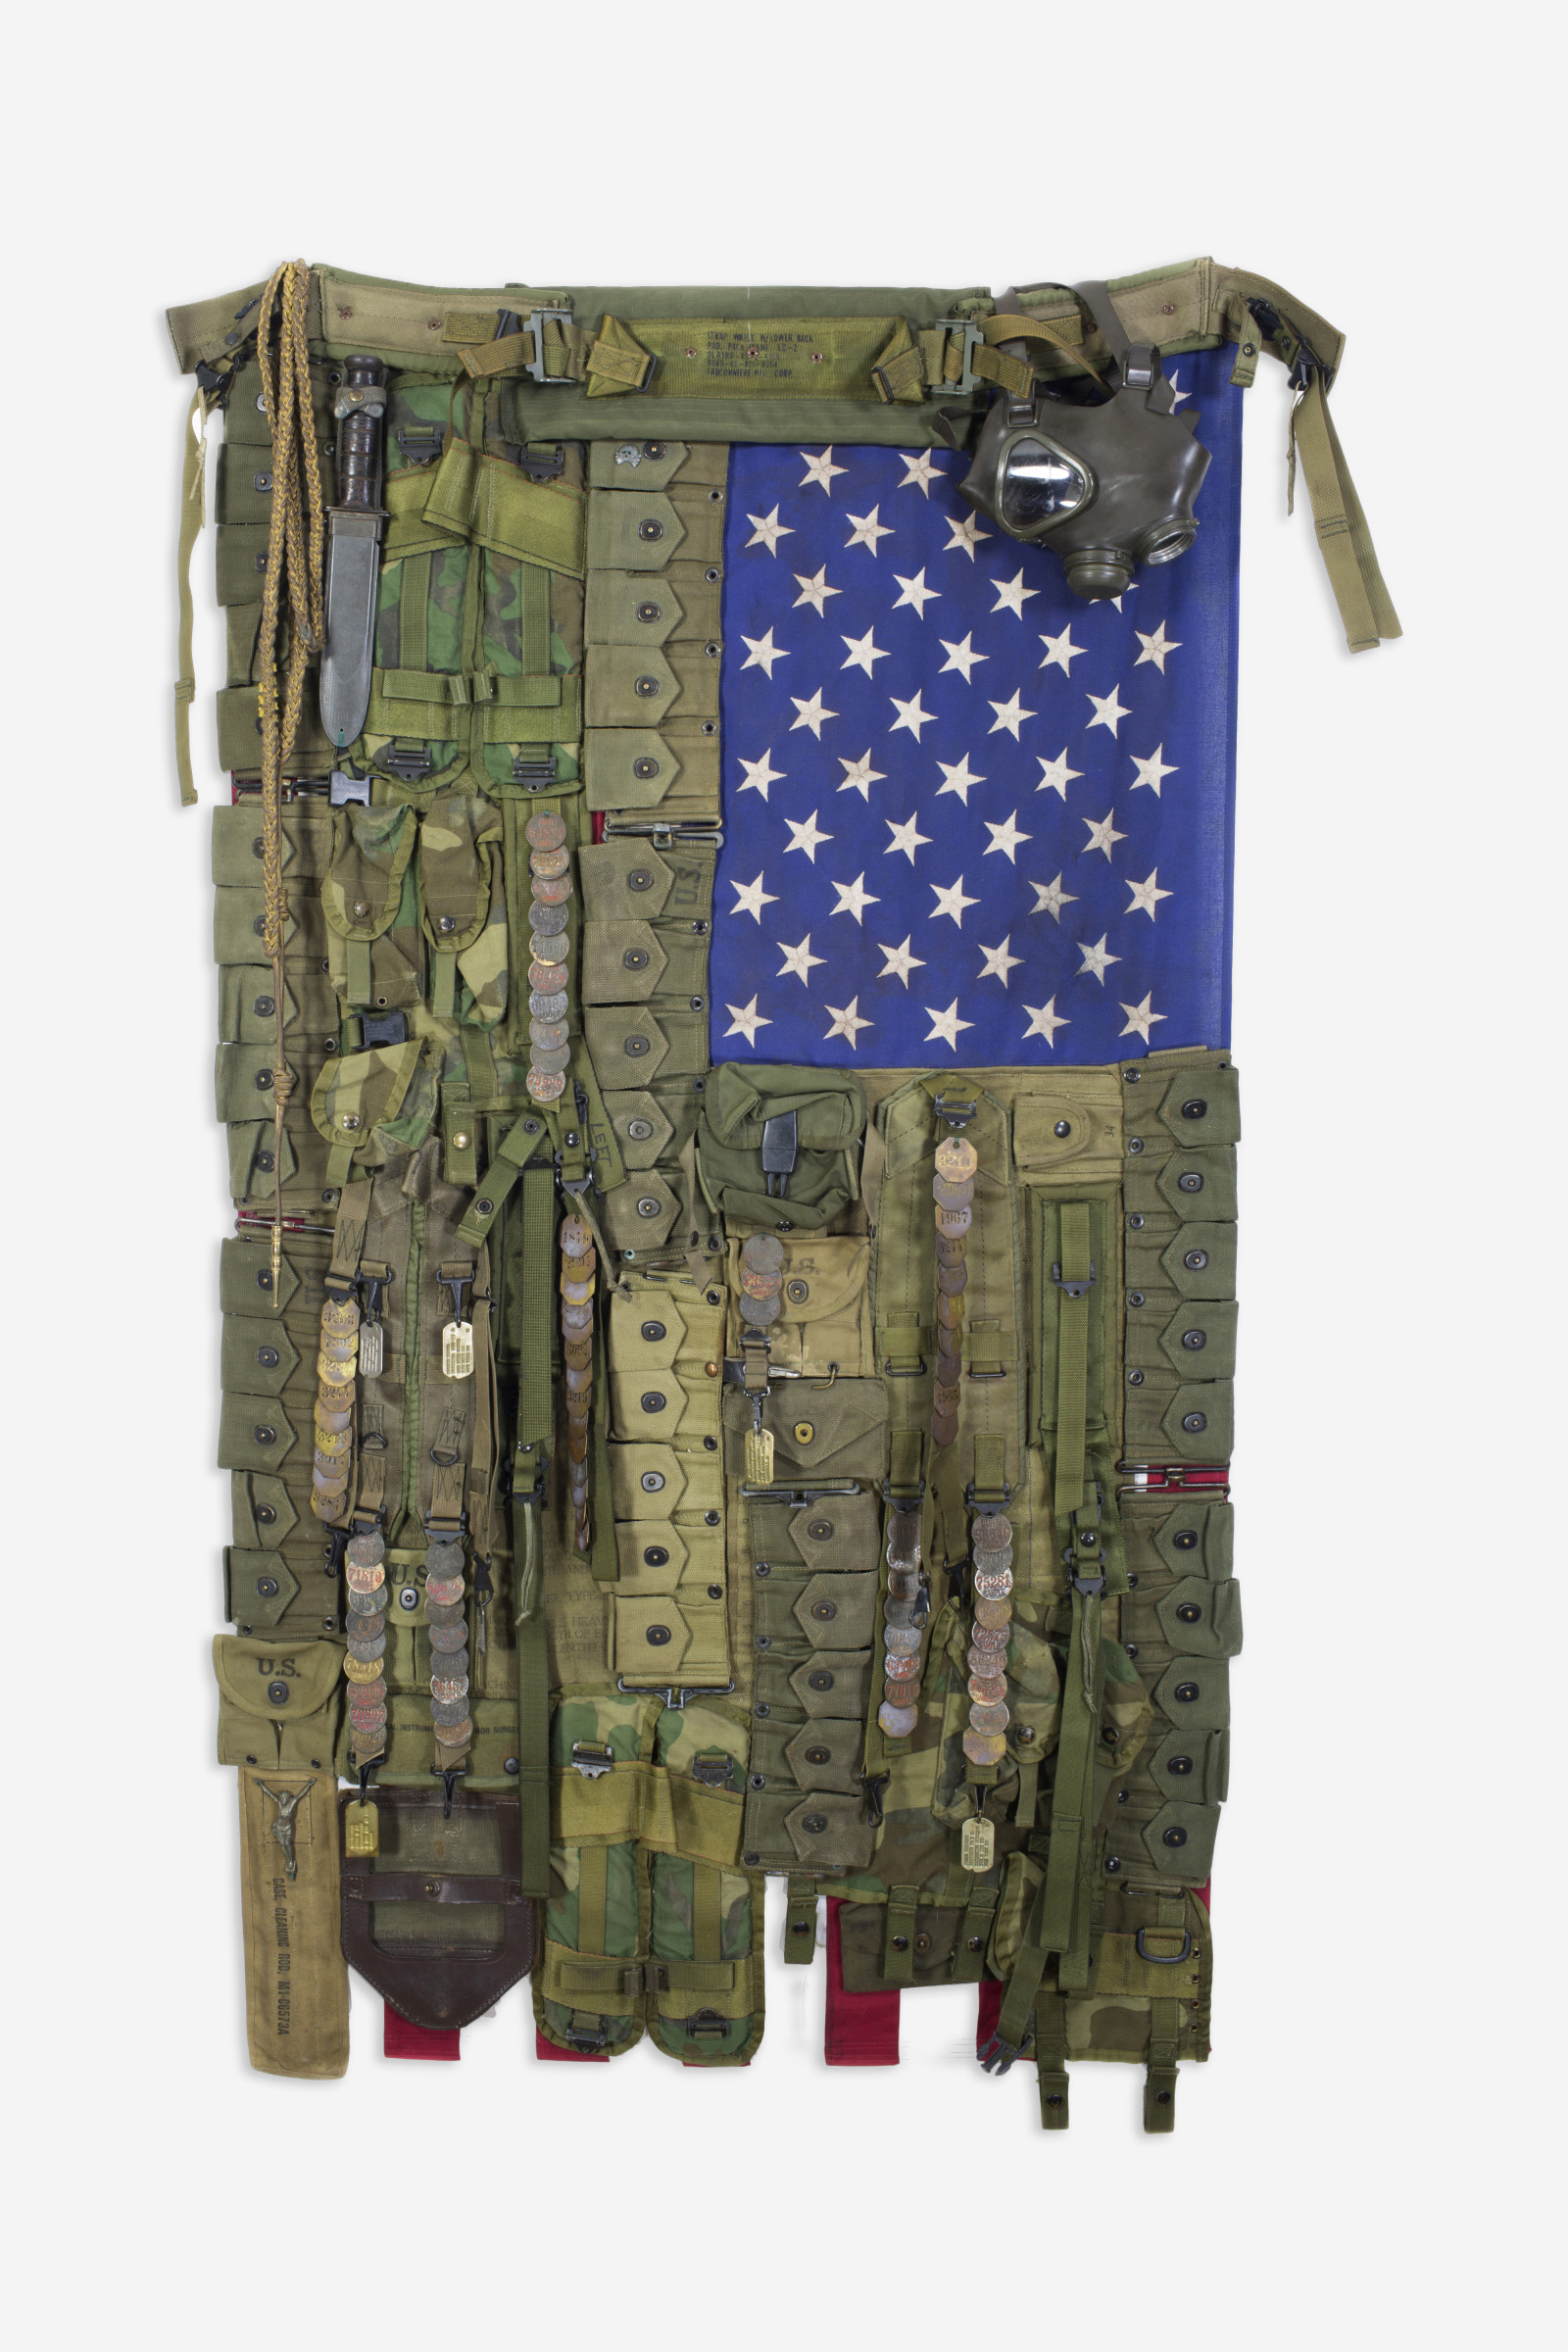 <span class=&#34;link fancybox-details-link&#34;><a href=&#34;/artists/33-sara-rahbar/works/966-sara-rahbar-flag-56-home-of-the-brave-2017/&#34;>View Detail Page</a></span><div class=&#34;artist&#34;><strong>Sara Rahbar</strong></div> <div class=&#34;title&#34;><em>Flag #56 Home of the Brave</em>, 2017</div> <div class=&#34;medium&#34;>Collected vintage objects on US vintage flag</div> <div class=&#34;dimensions&#34;>165.1 x 104.1 cm<br /> 65 x 41 in</div>